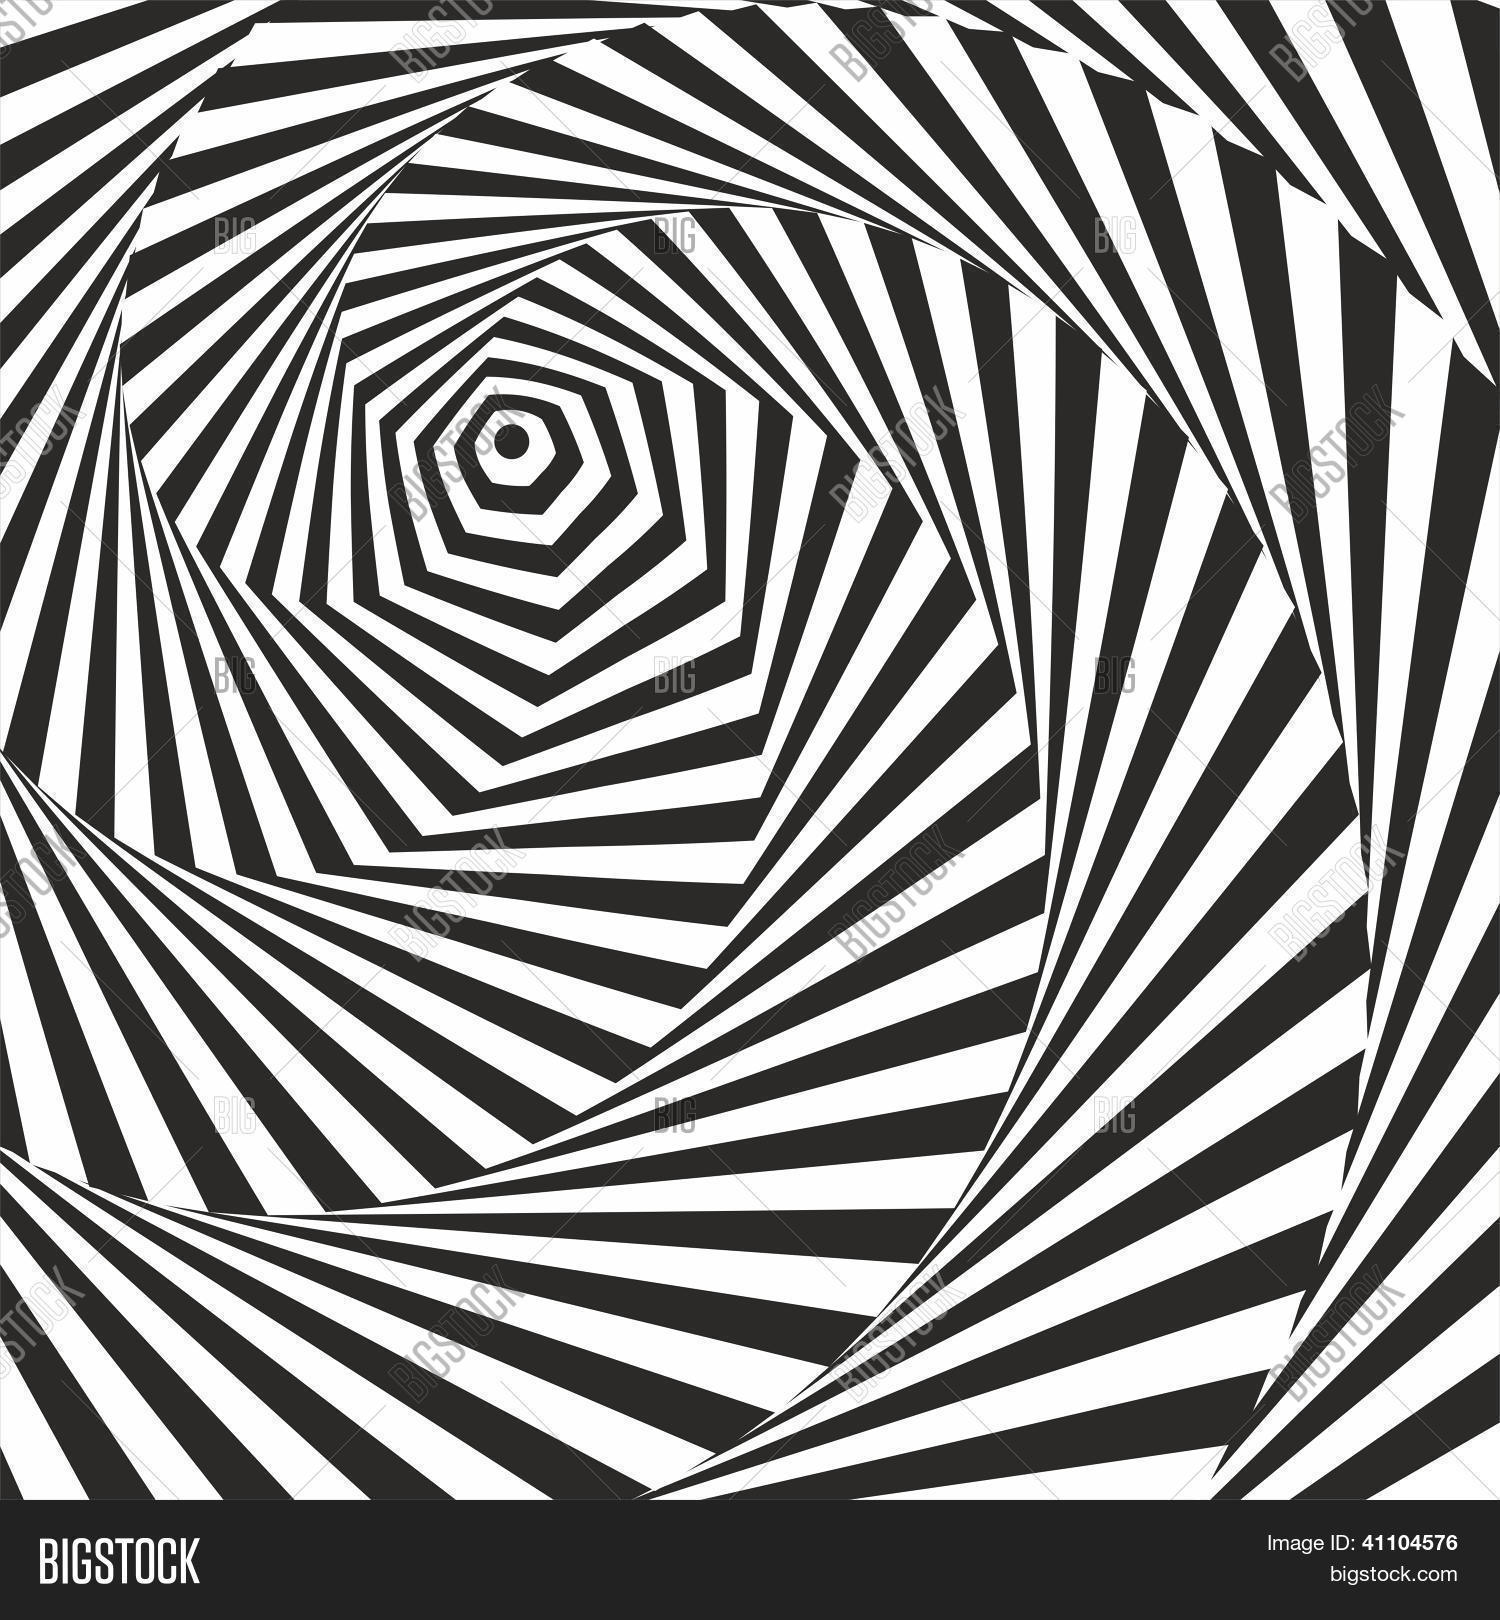 Black white optical illusion vector photo bigstock for Animated optical illusions template